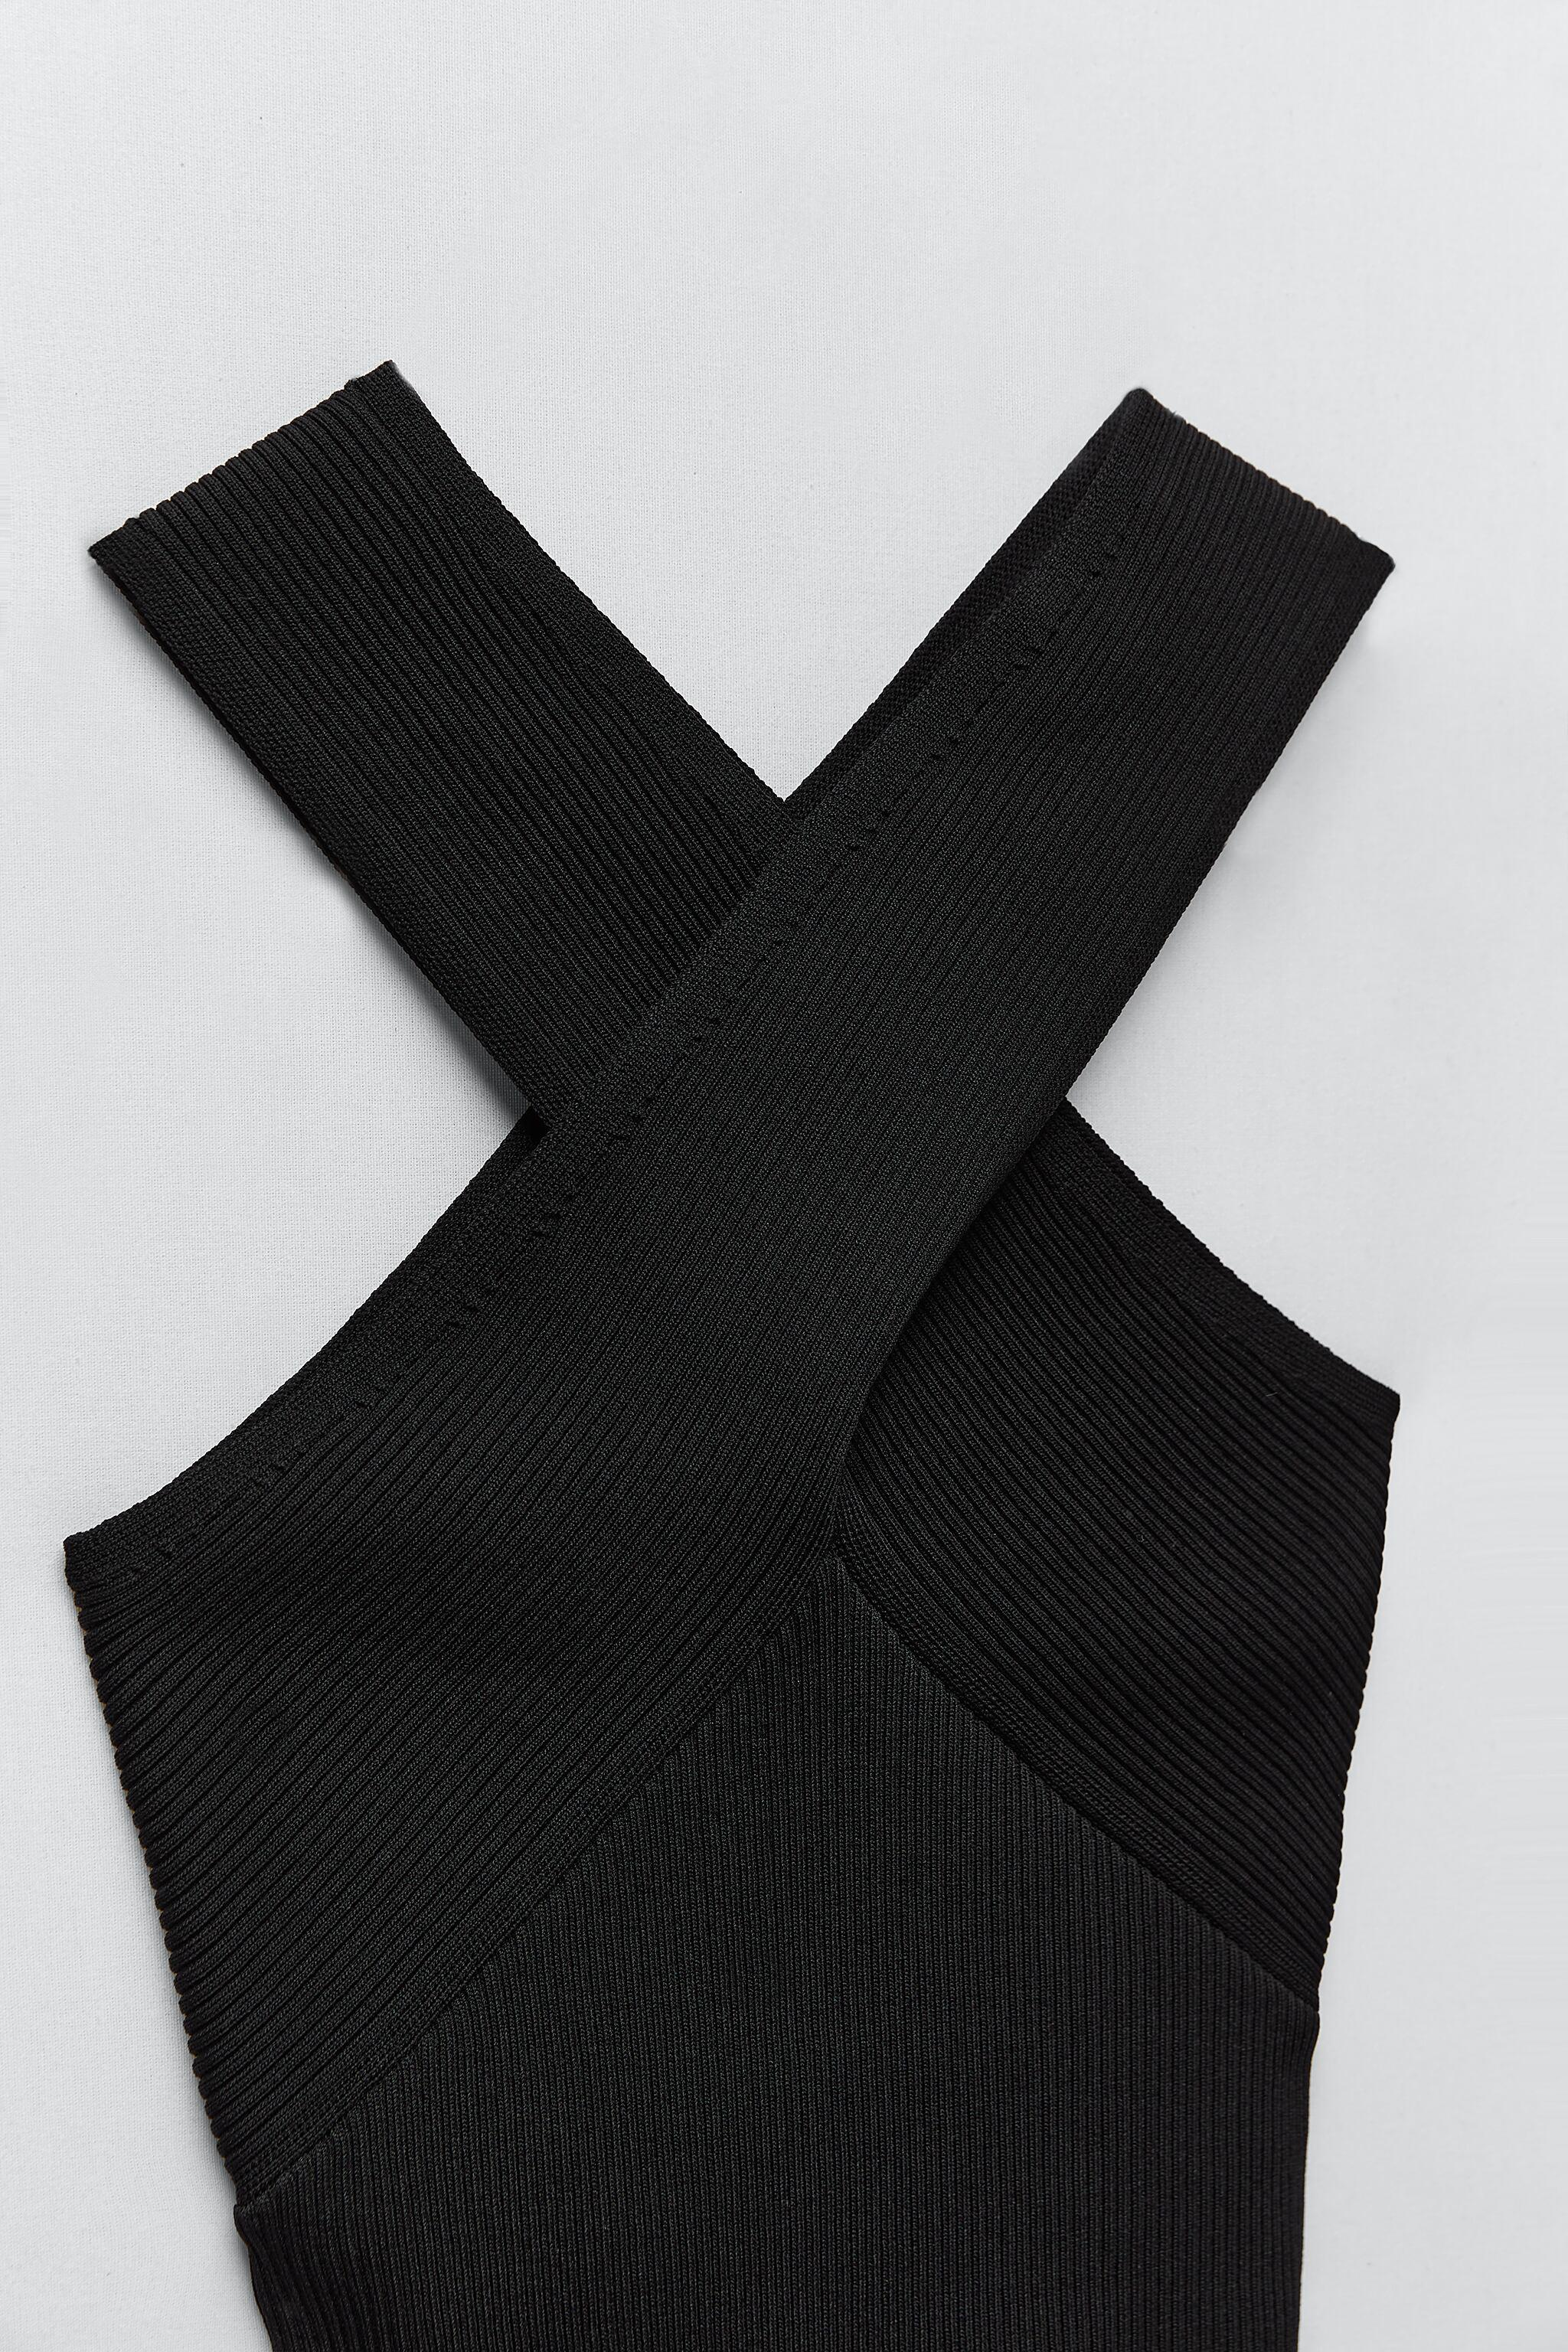 KNIT TOP WITH CROSSED STRAPS 9